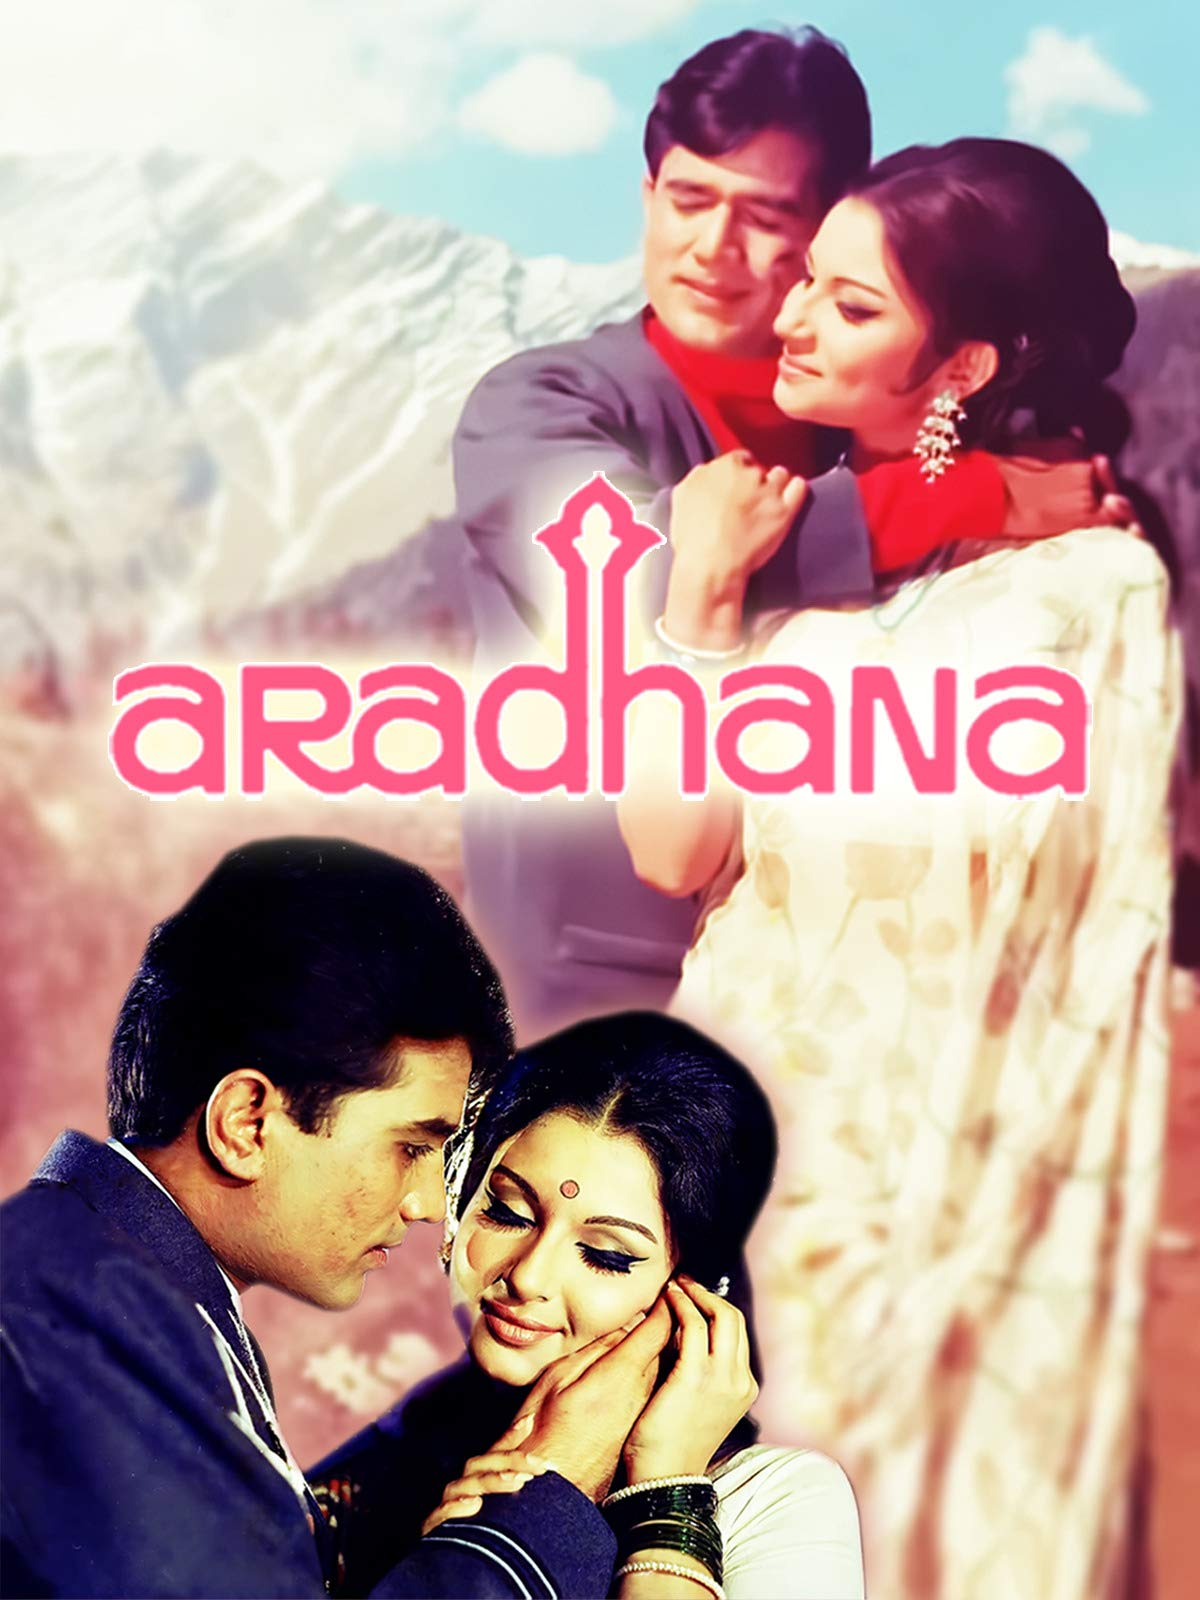 aradhana movie free download in hd